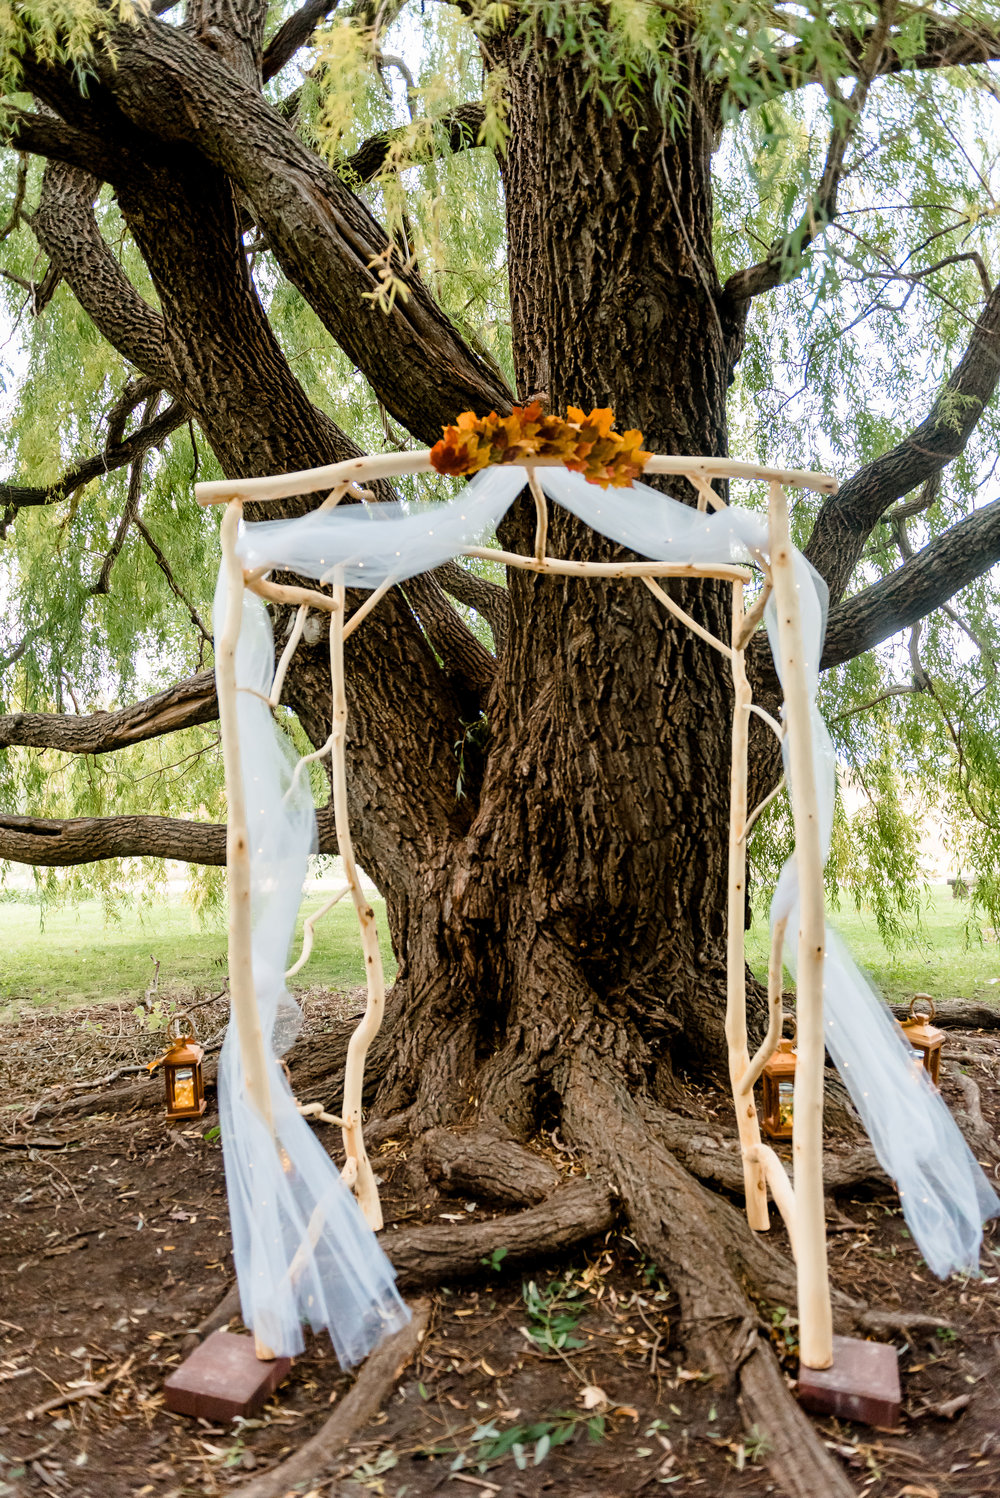 Handmade Wood Wedding Arbor - Weeping Willows Wedding Ceremony Site at MN Landscape Arboretum - Chaska MN Wedding Photographer